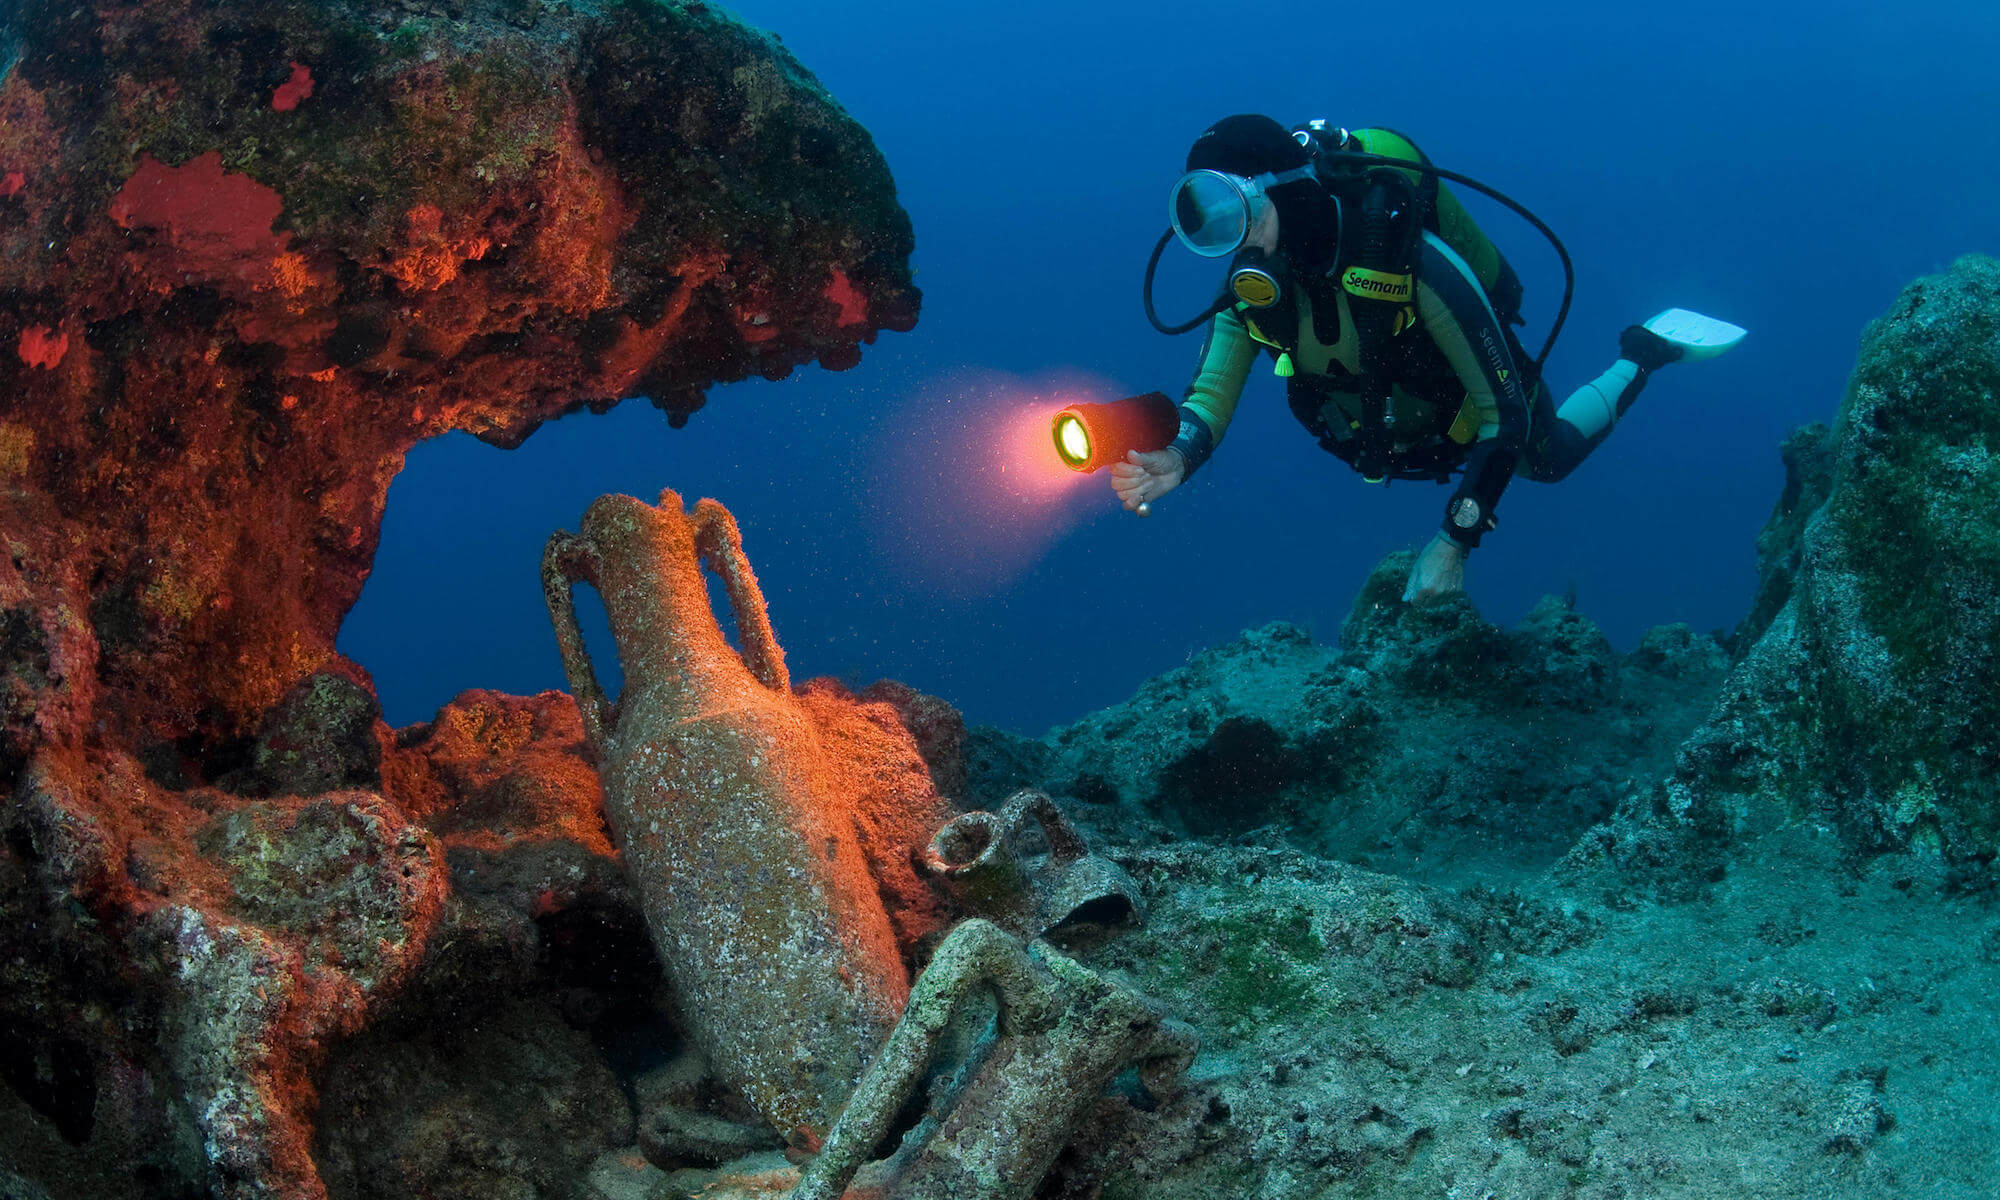 Scuba diver discovers old amphoras of 2nd century B.C., Lykia, Mediterranean sea, Turkey